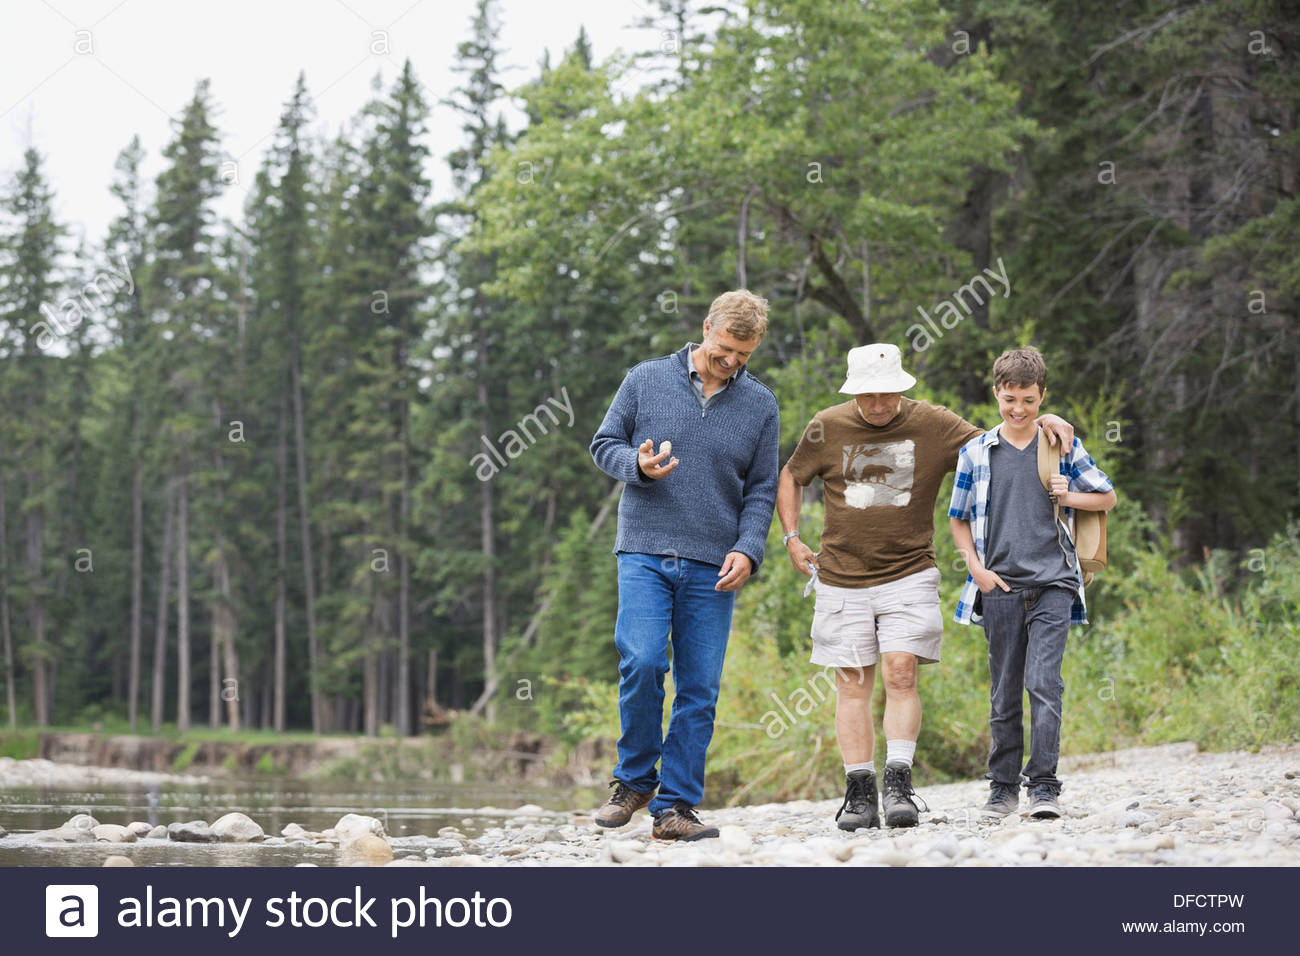 Three generation males walking on river bank - Stock Image